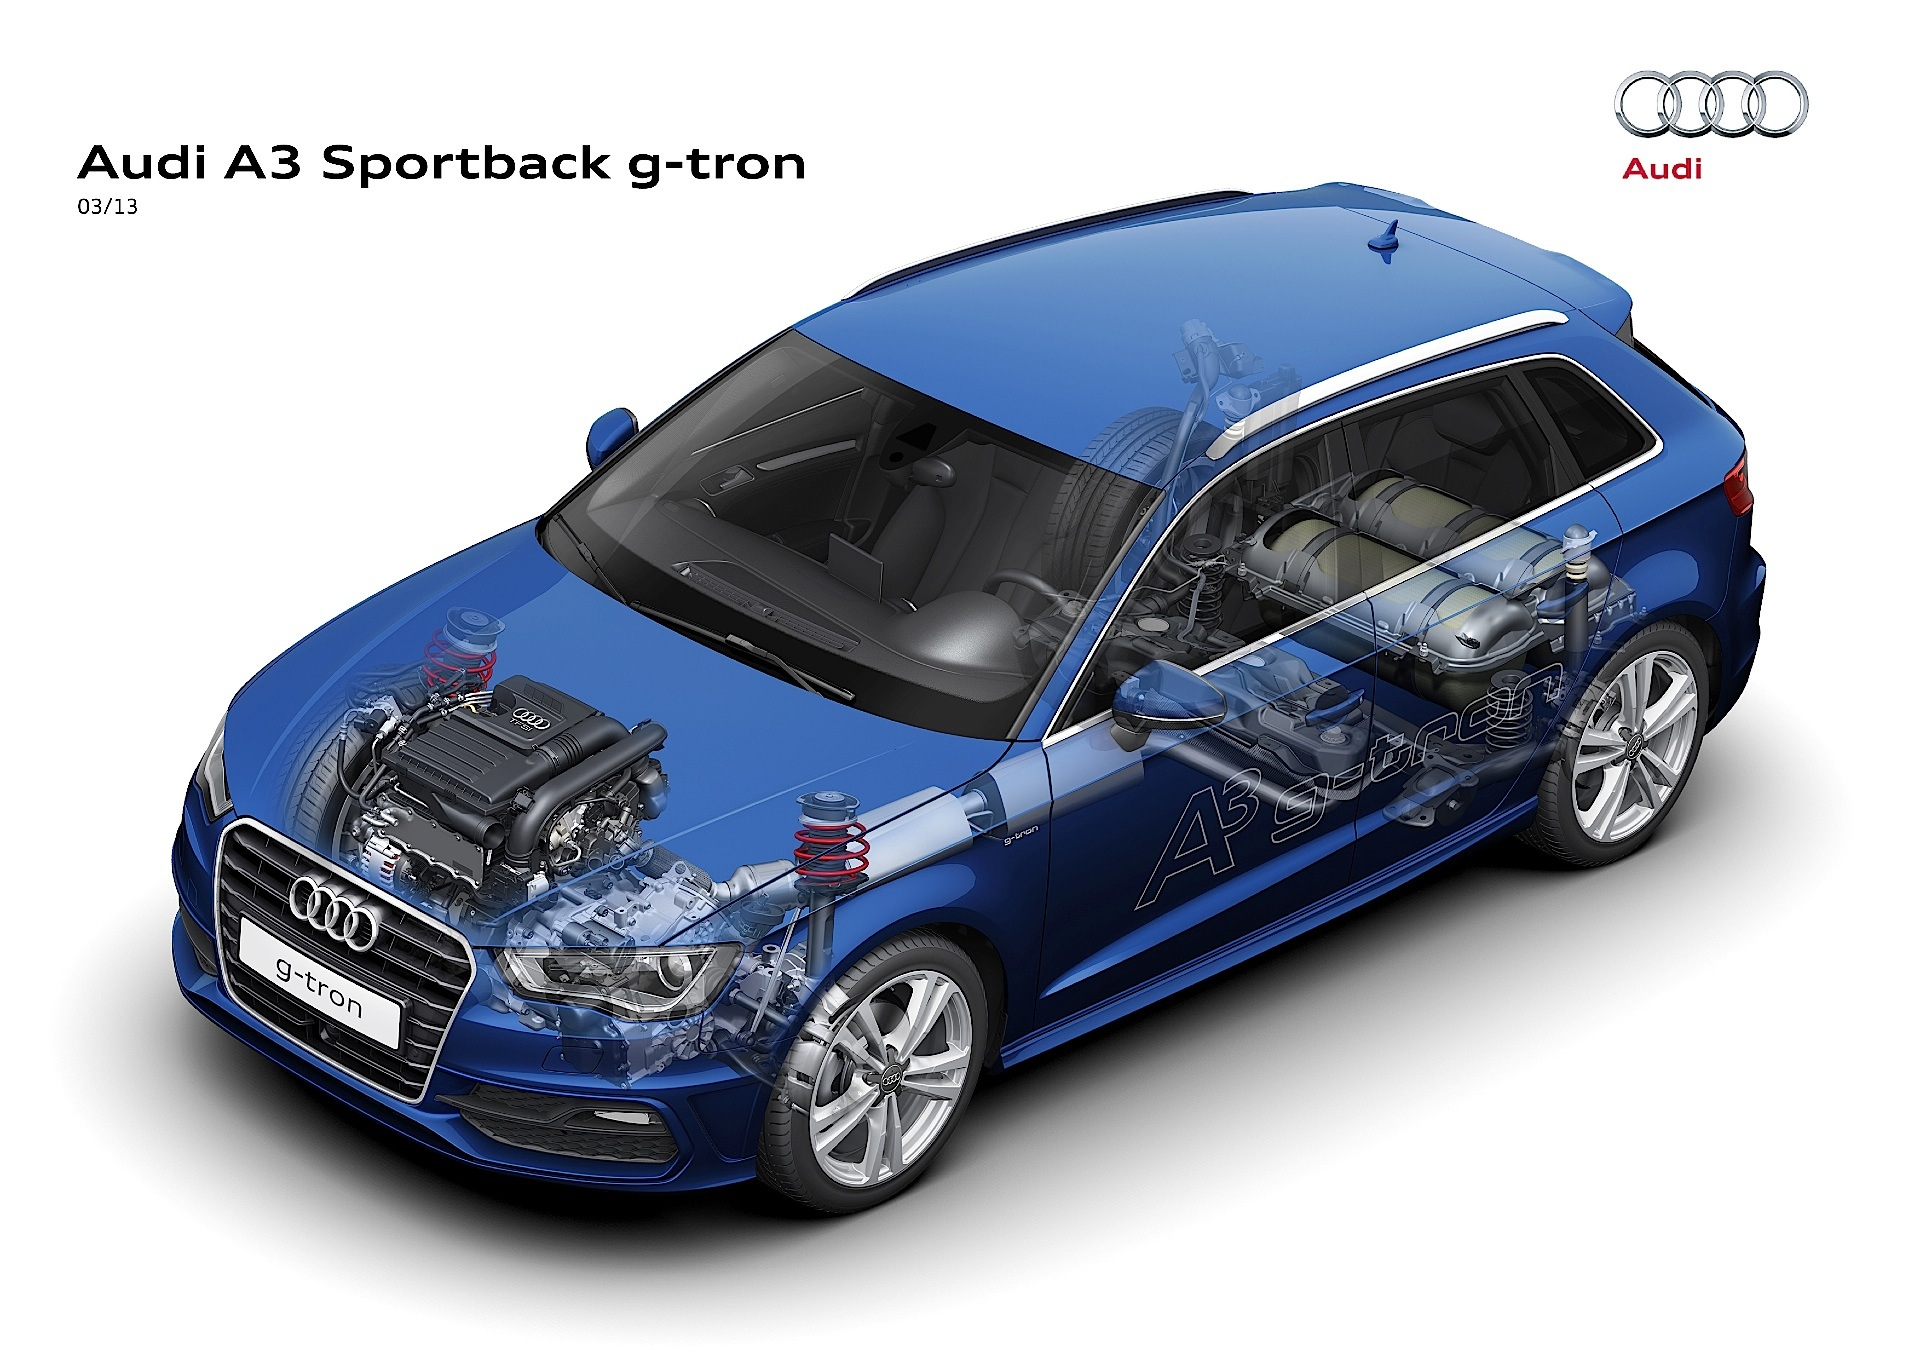 audi a3 sportback g tron technical details history. Black Bedroom Furniture Sets. Home Design Ideas